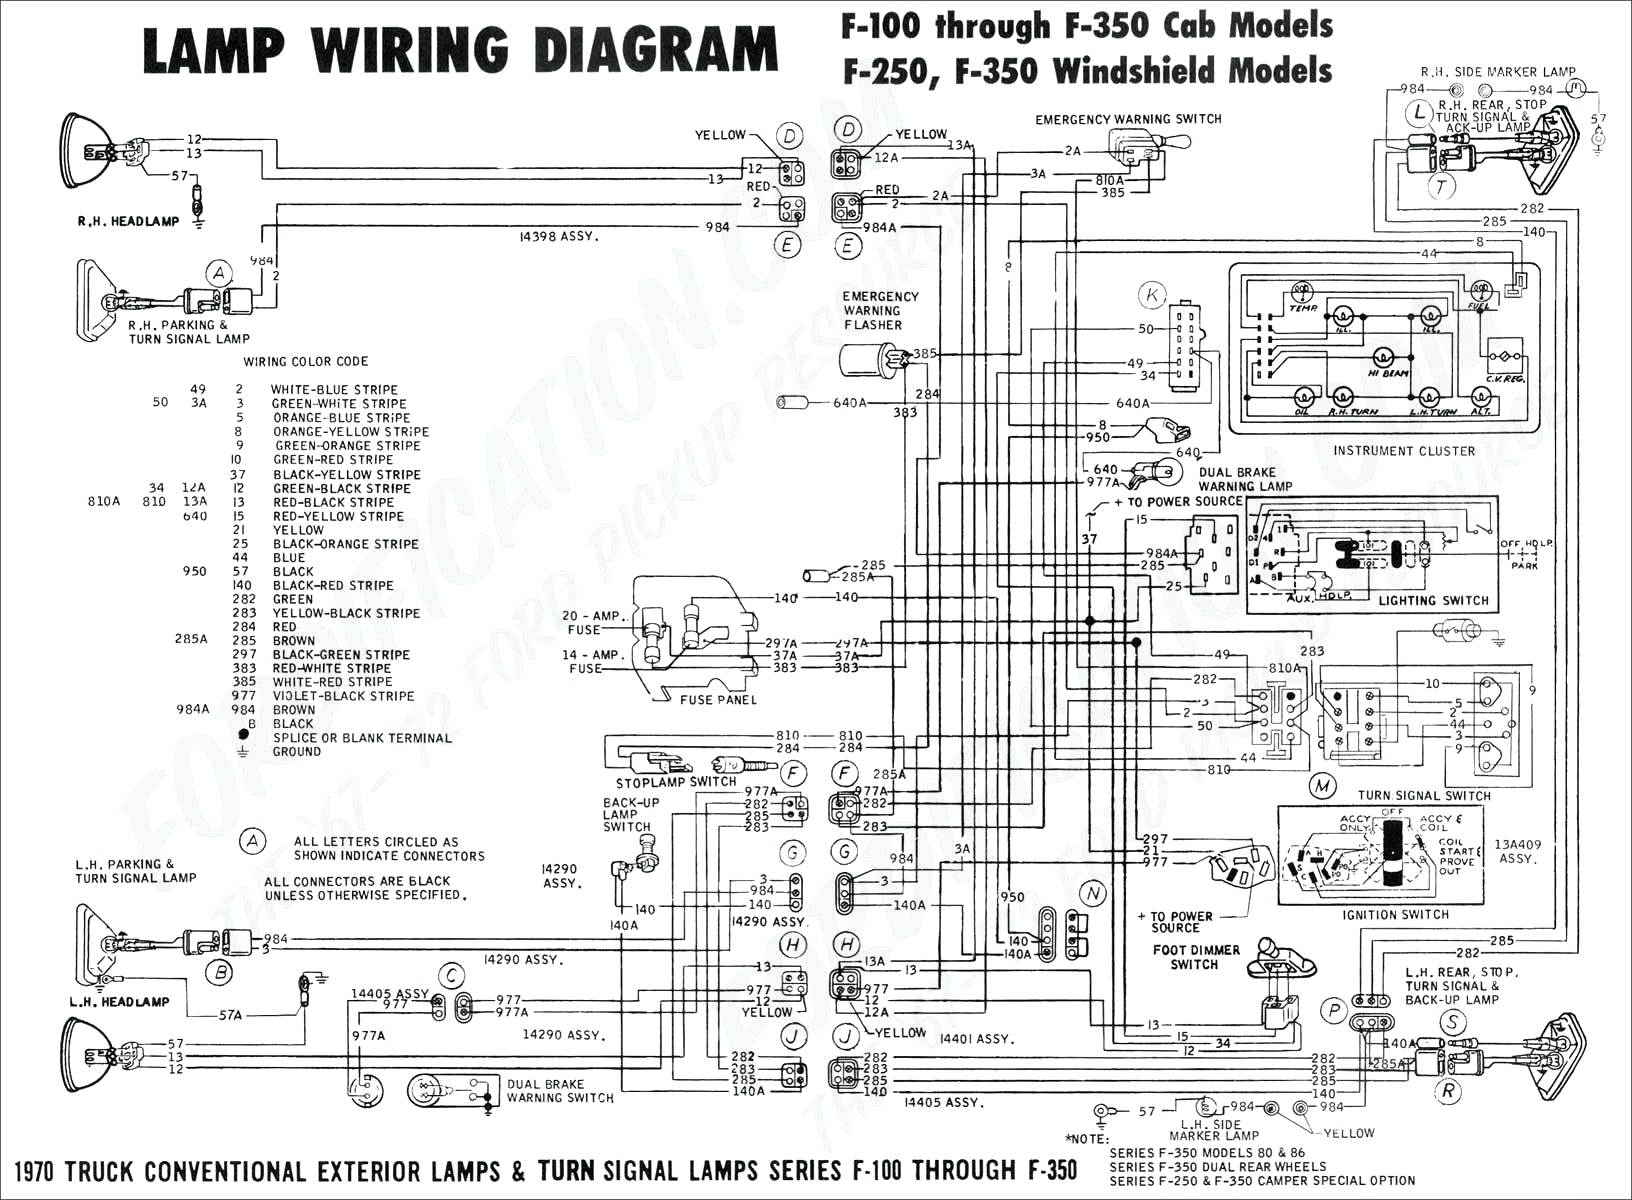 [DIAGRAM] 2004 Ford F250 Super Duty Trailer Wiring Diagram